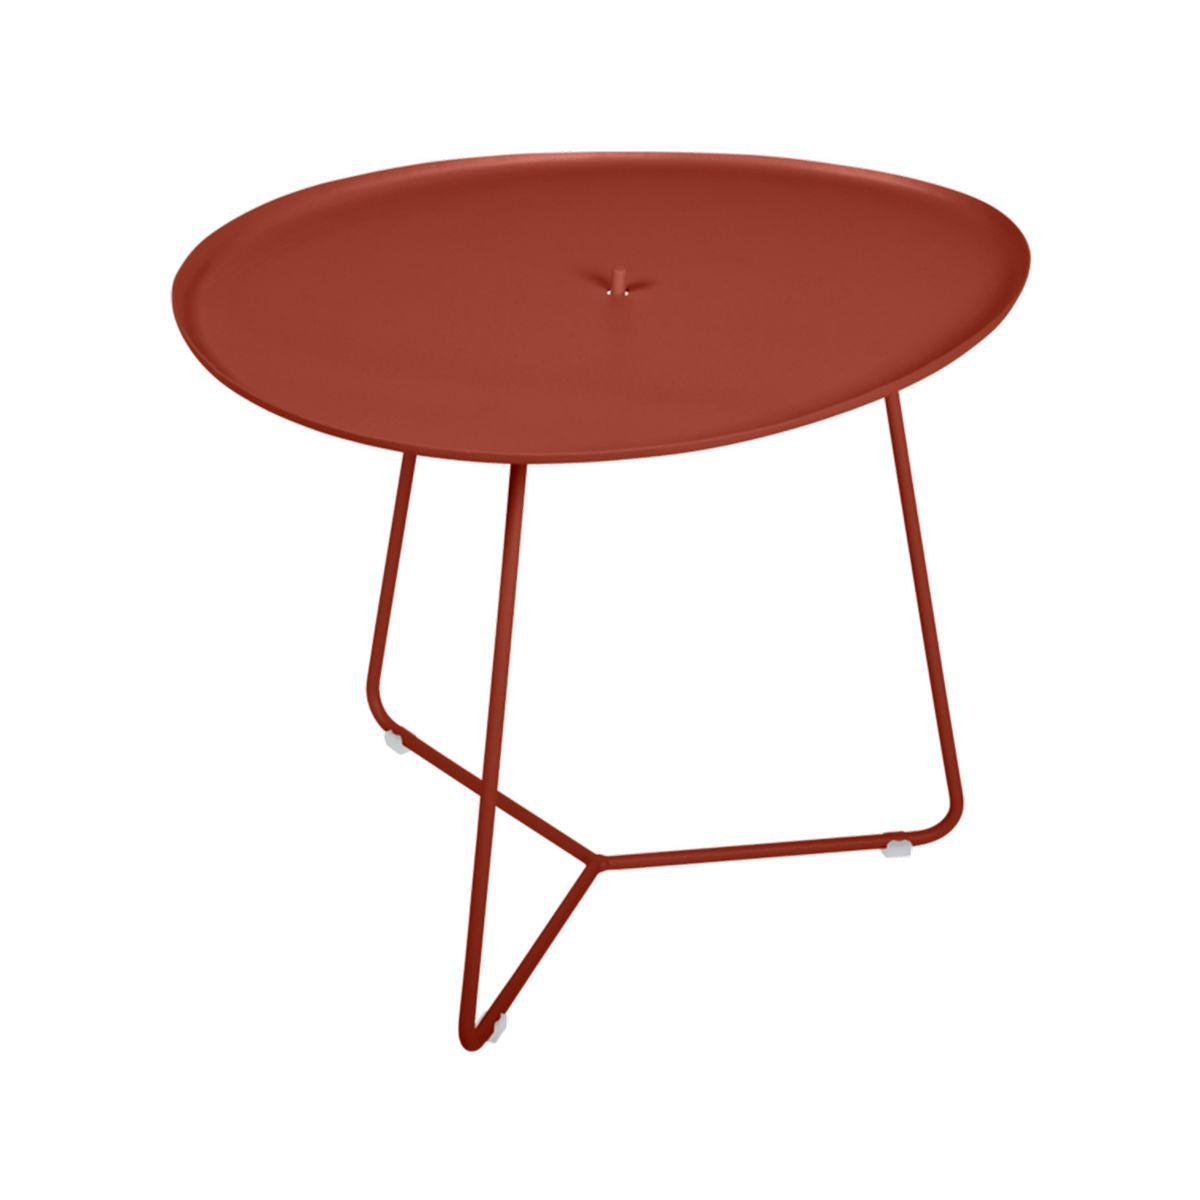 Table basse COCOTTE Fermob rouge ocre